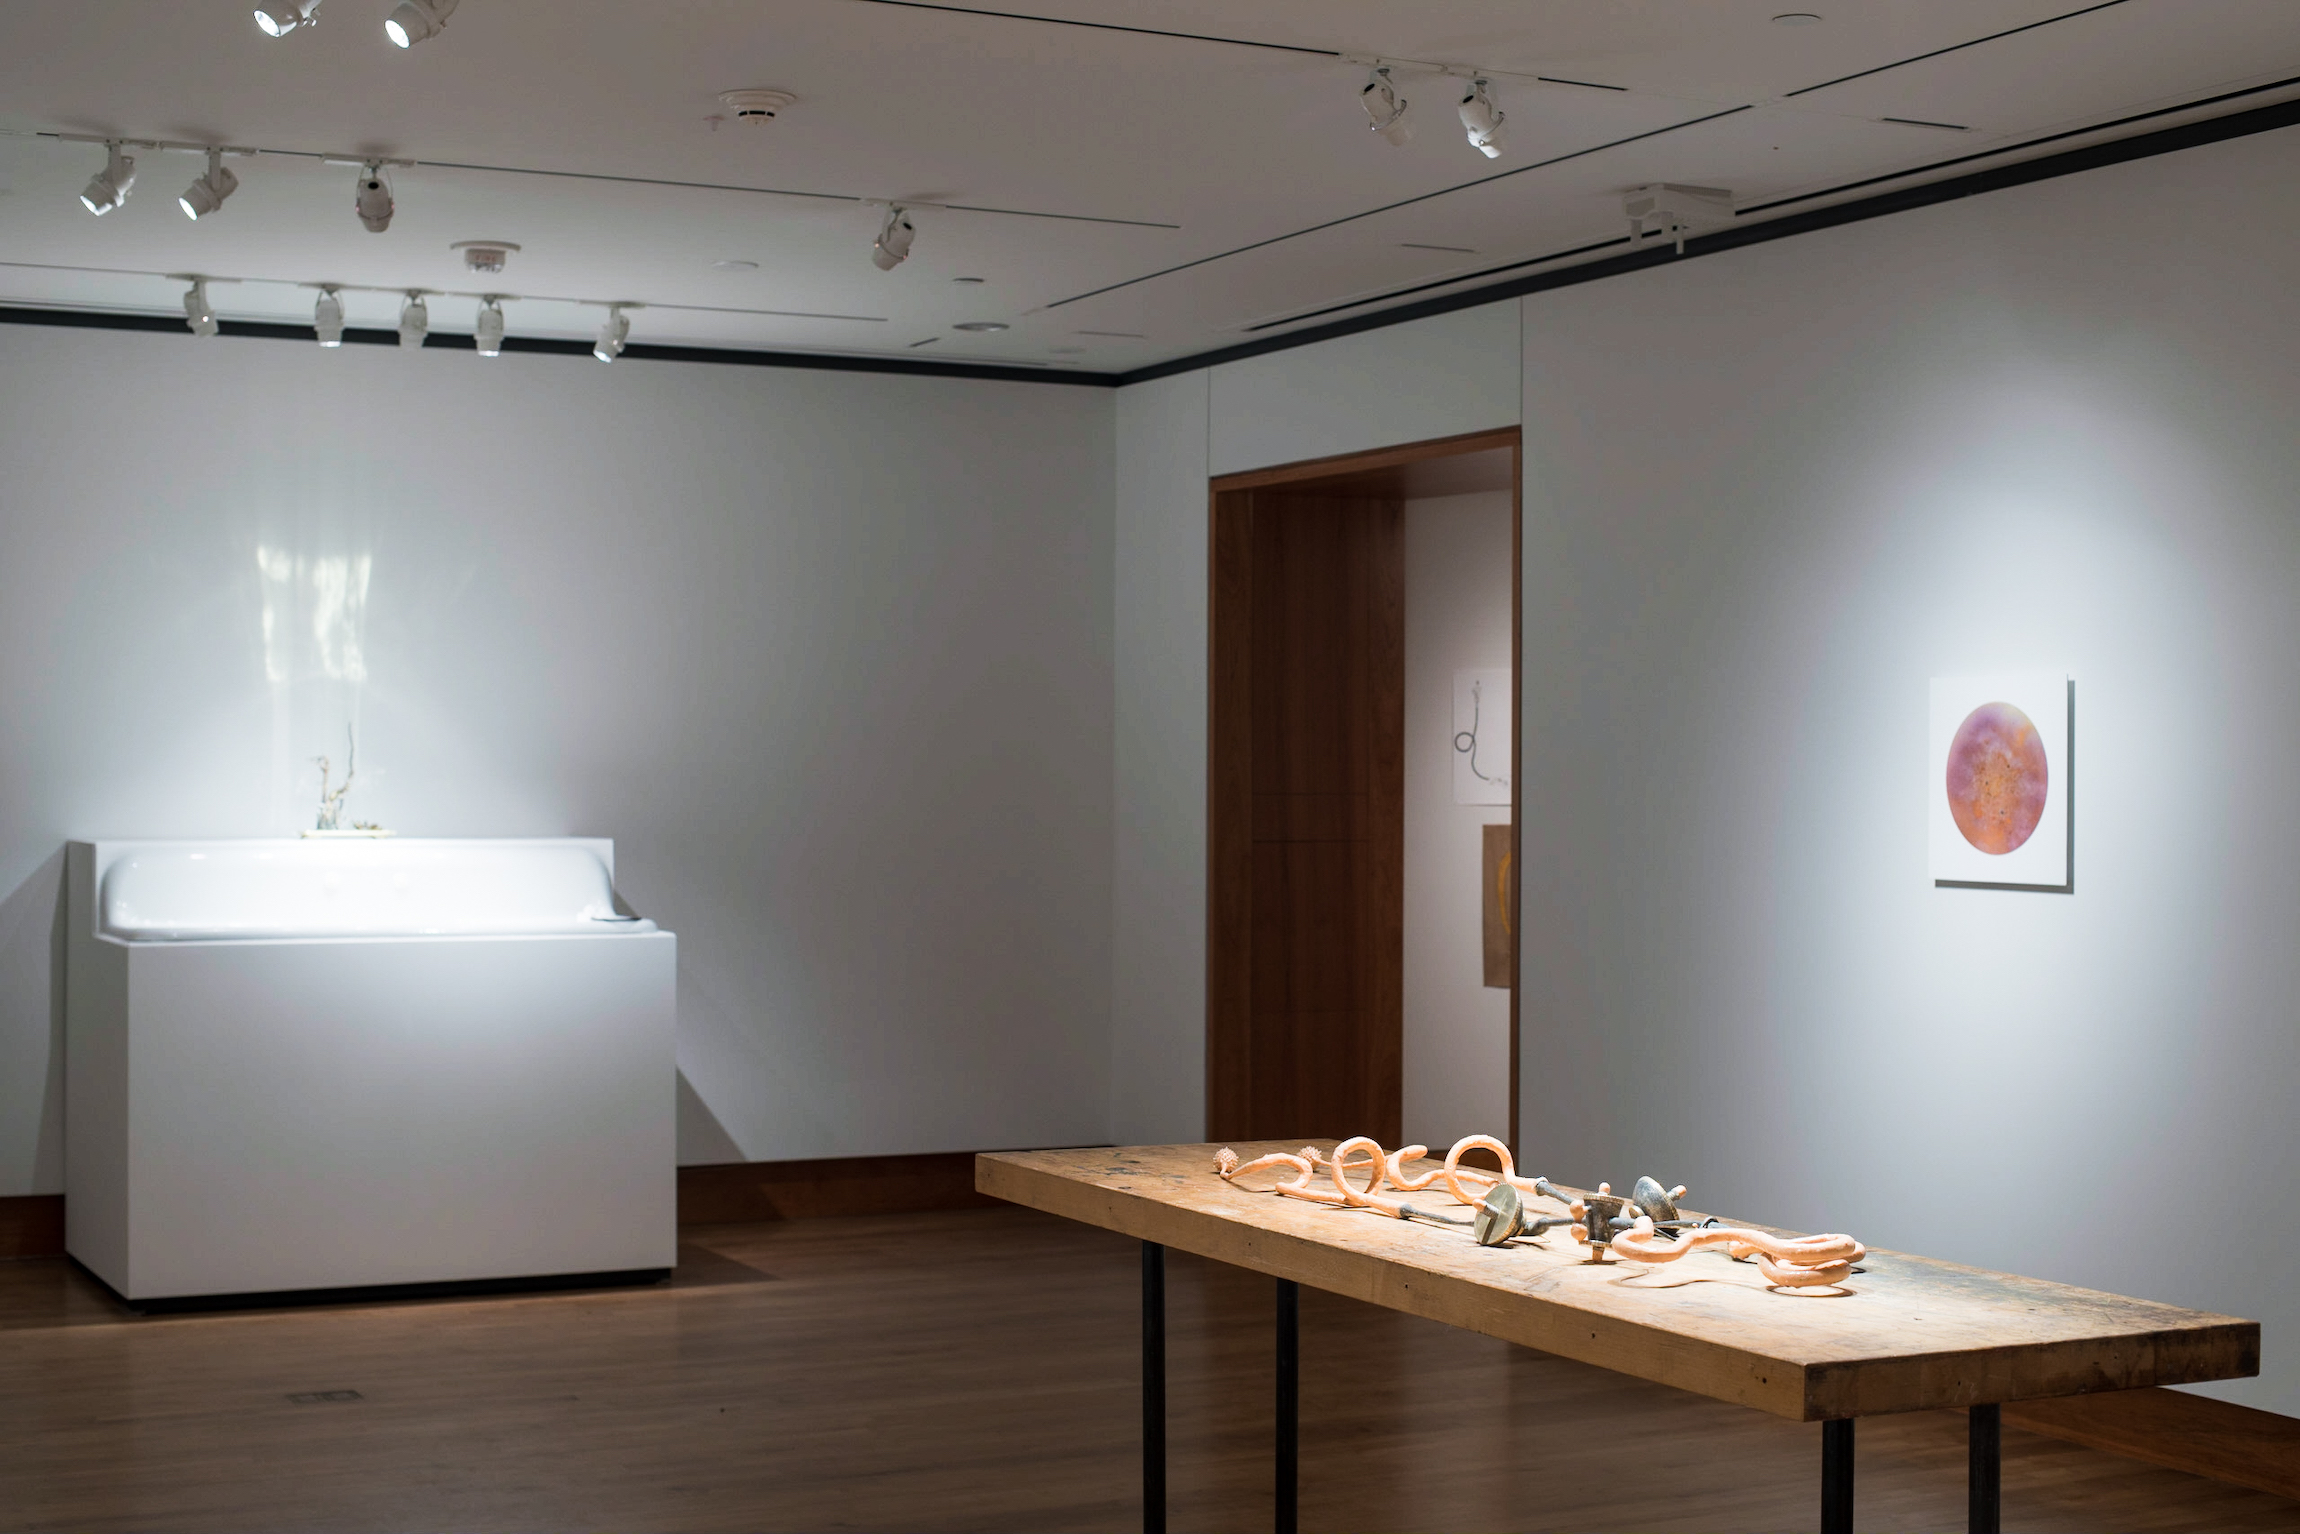 Installation view of Chloe Darke's Master of Fine Arts exhibition Secrete, Augment, Testify at the Chazen Museum of Art, University of Wisconsin-Madison. Photography by Kyle Herrera.